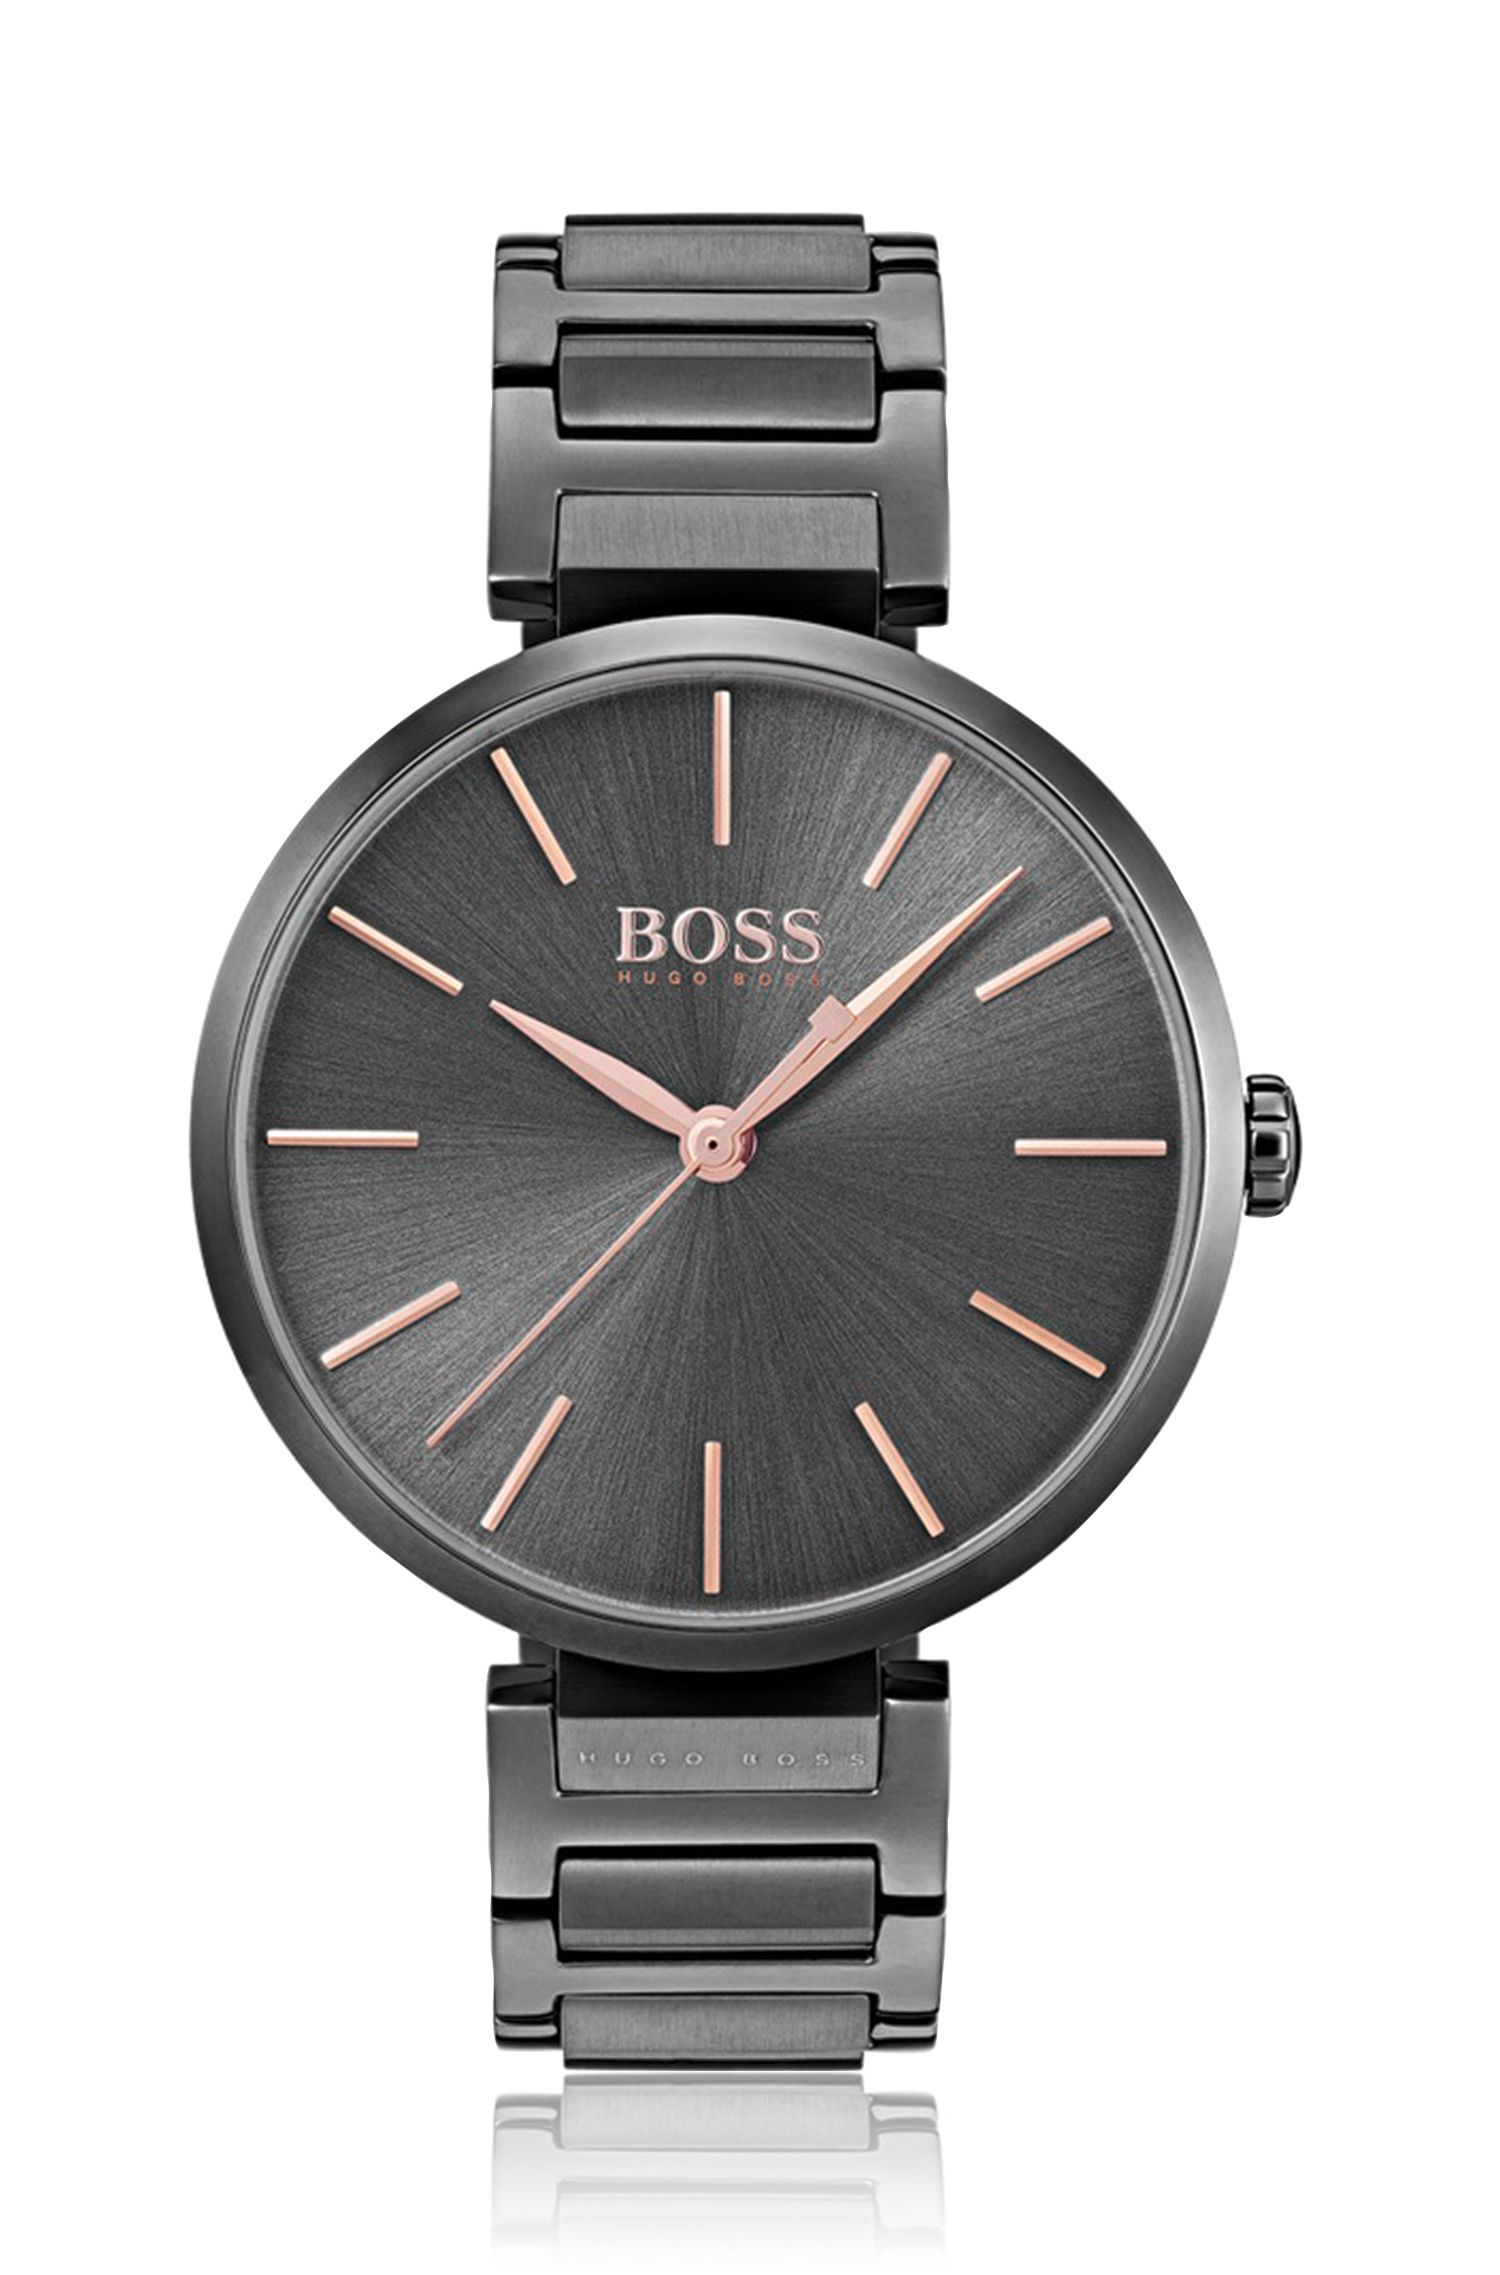 Anthracite-plated watch with rose-gold details